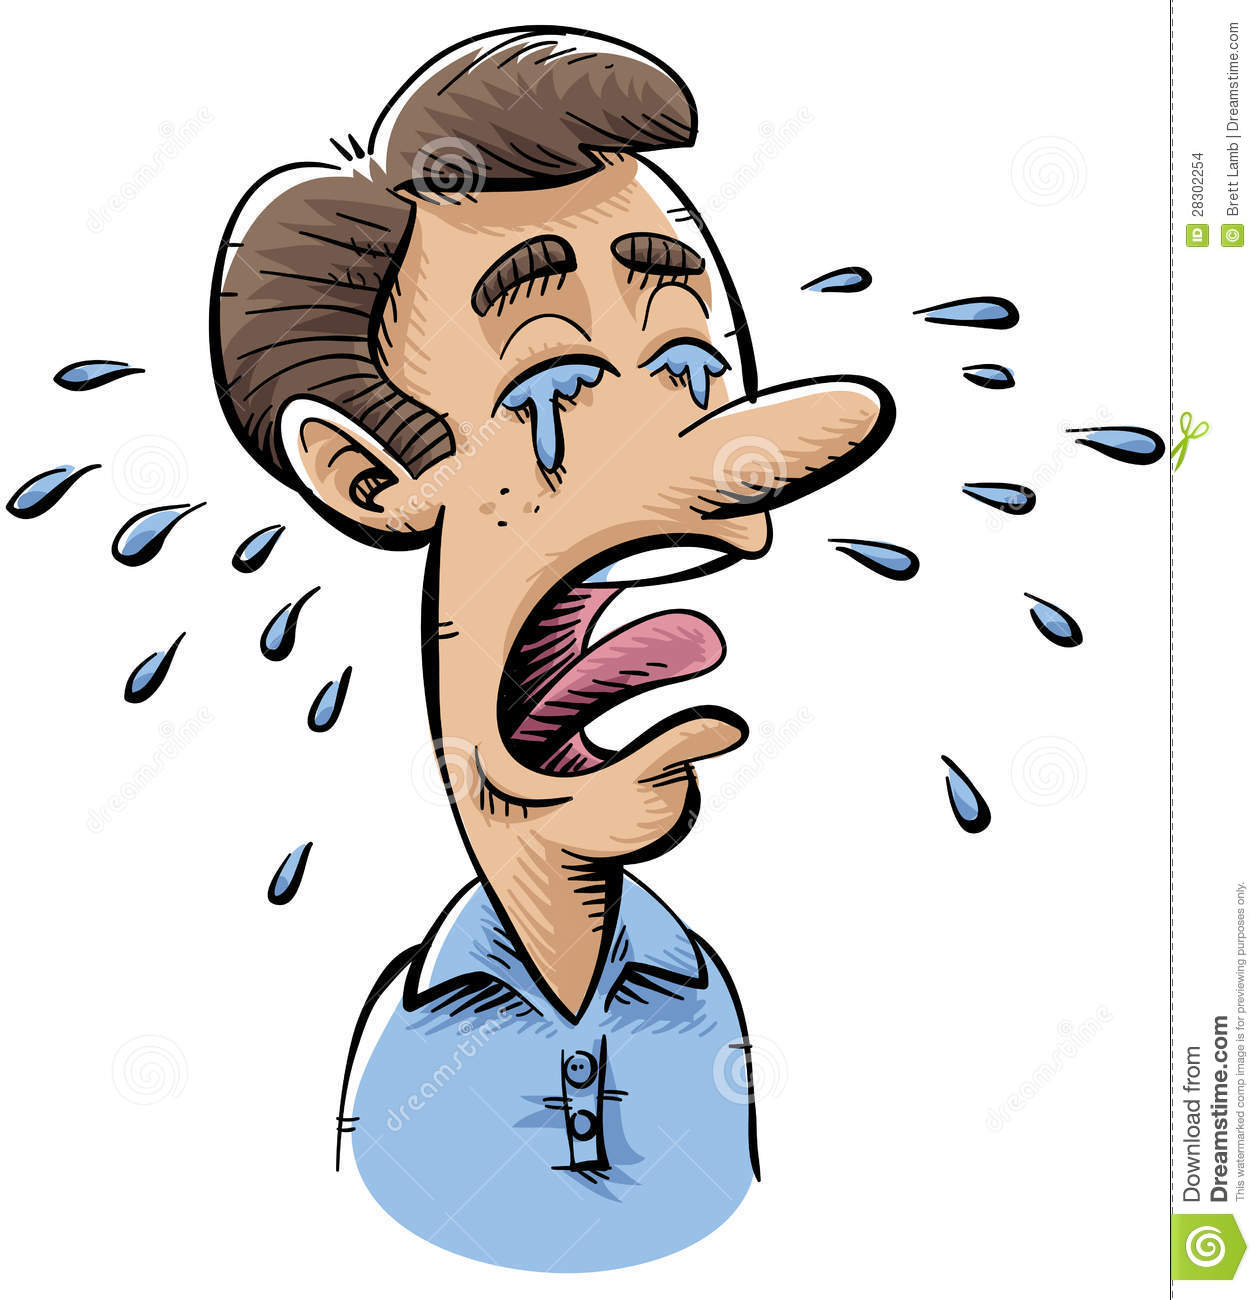 Crying Man Stock Images - Image: 28302254